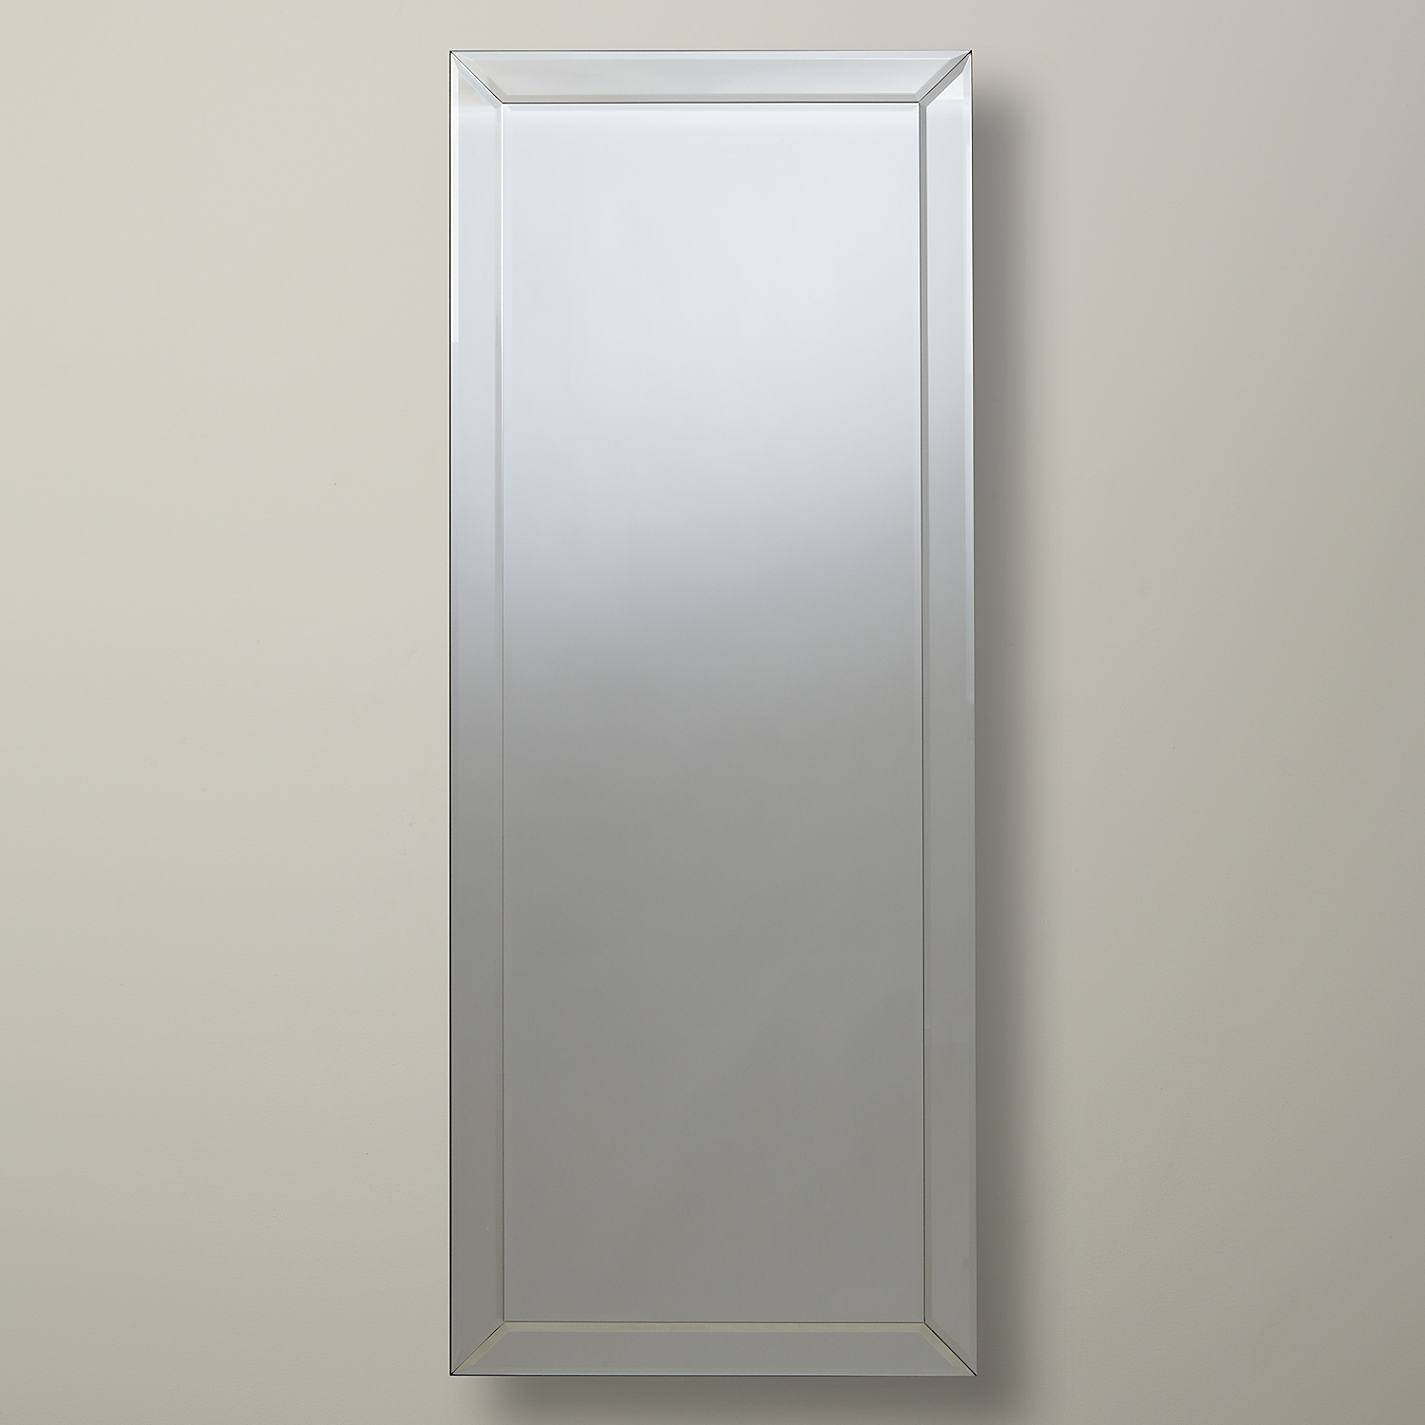 Bevelled Mirror As Indoor Decorative Touch | Lgilab | Modern With Large Bevelled Edge Mirrors (View 10 of 15)